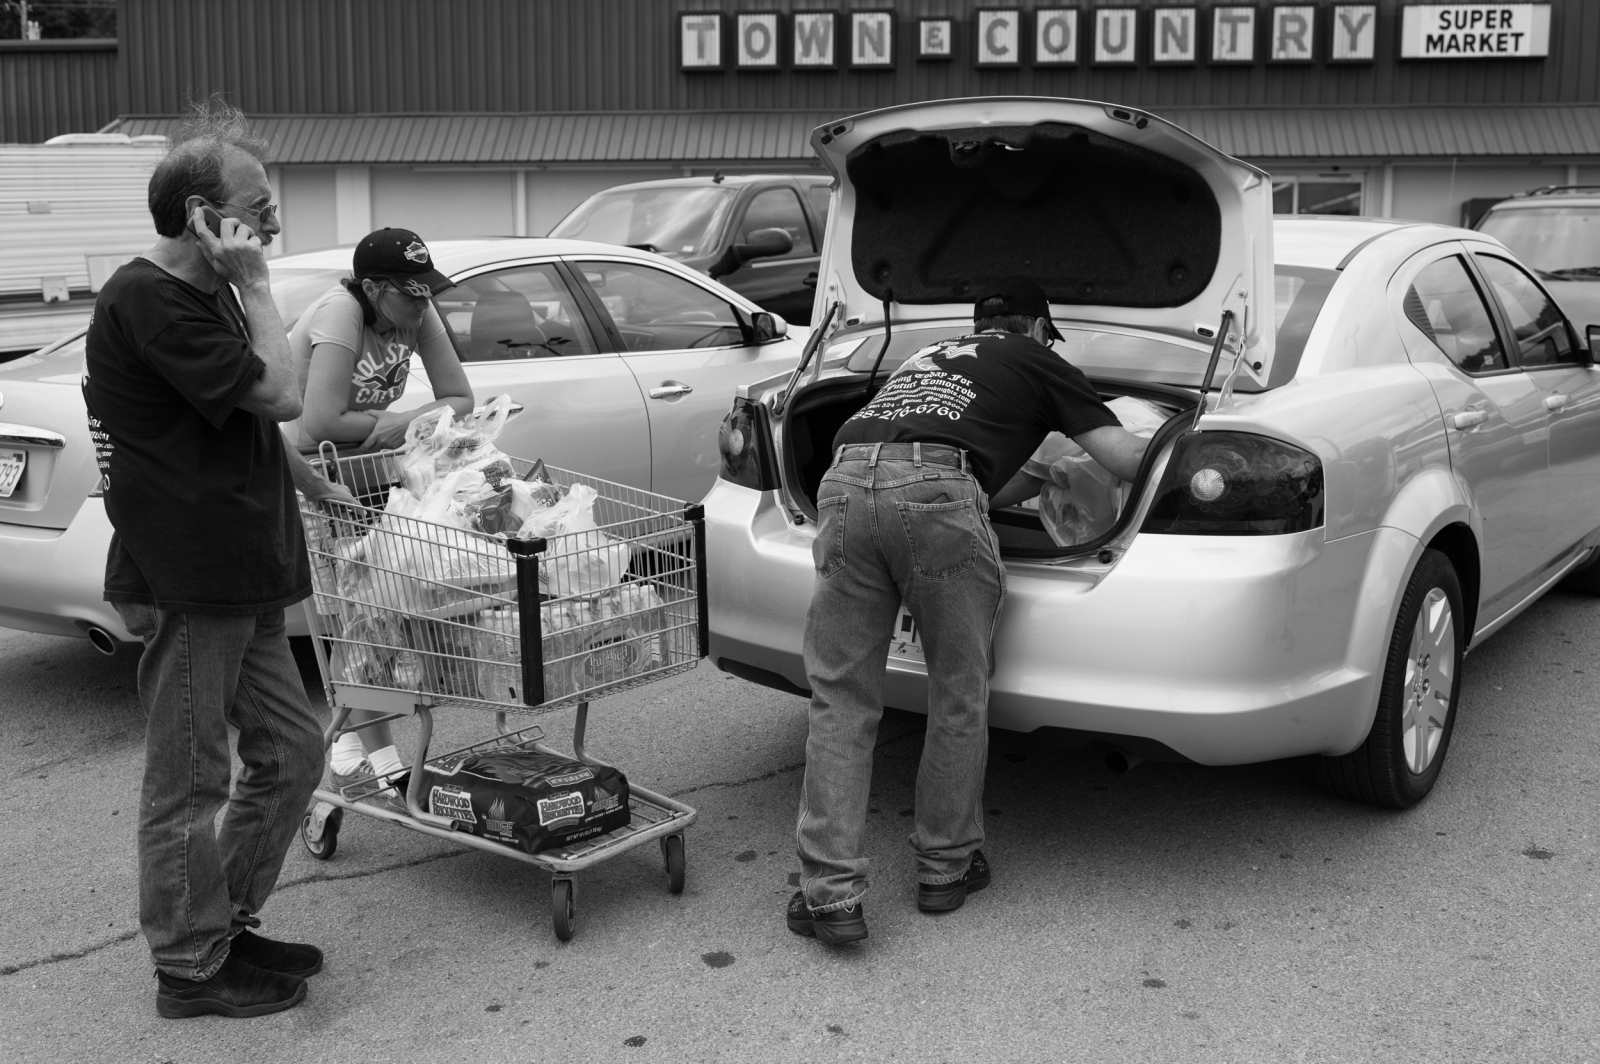 Missouri.AnImperial Wizard of a mid-western based Klan realm, his wife and Imperial officer food shooping prior to a weekend unity gathering.